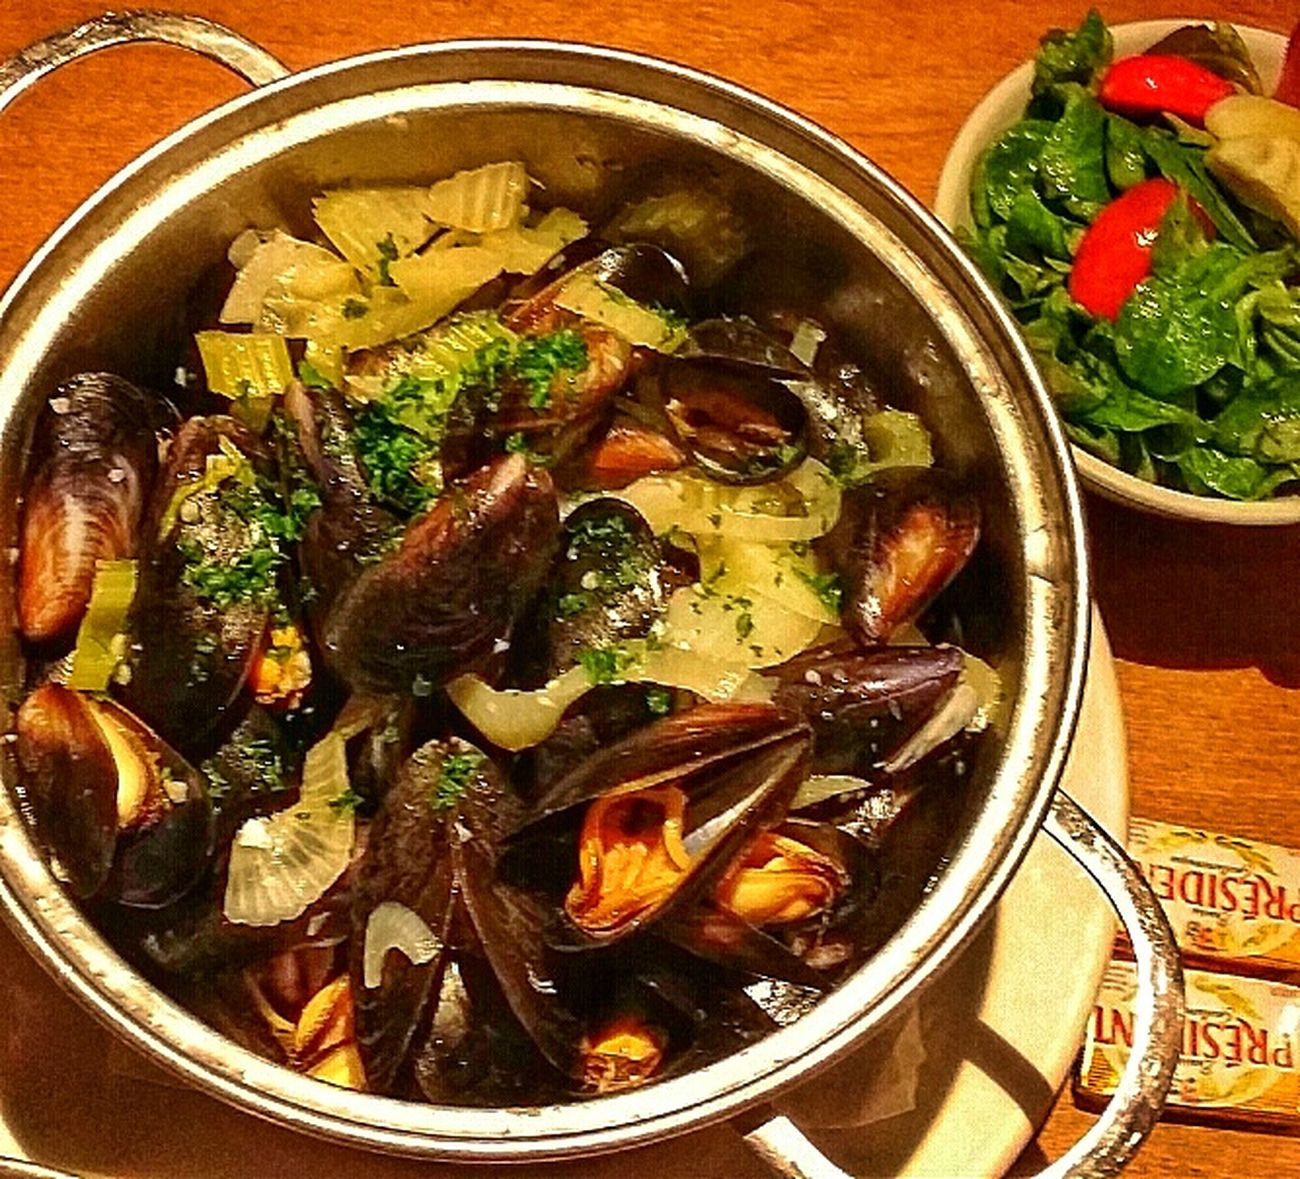 Gone in 15 minutes 1 Kg Mussels Belgo Food Photography London